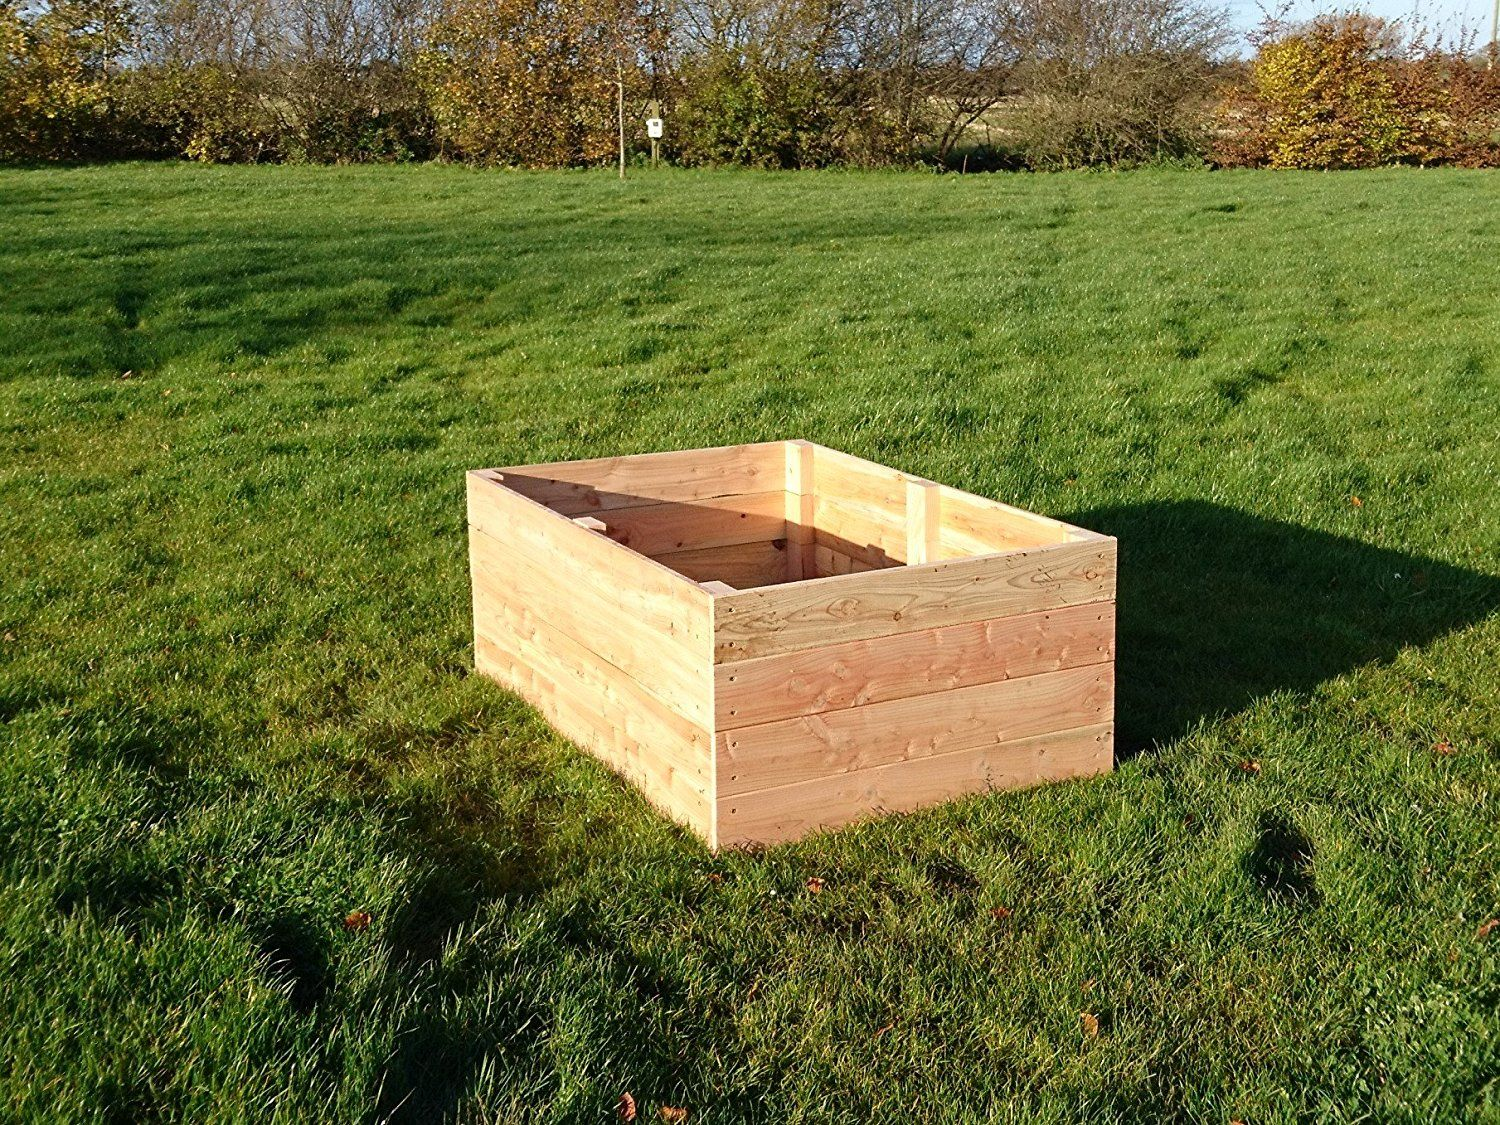 Premade planter 1.5m x 1m x .60m price £100 (With images